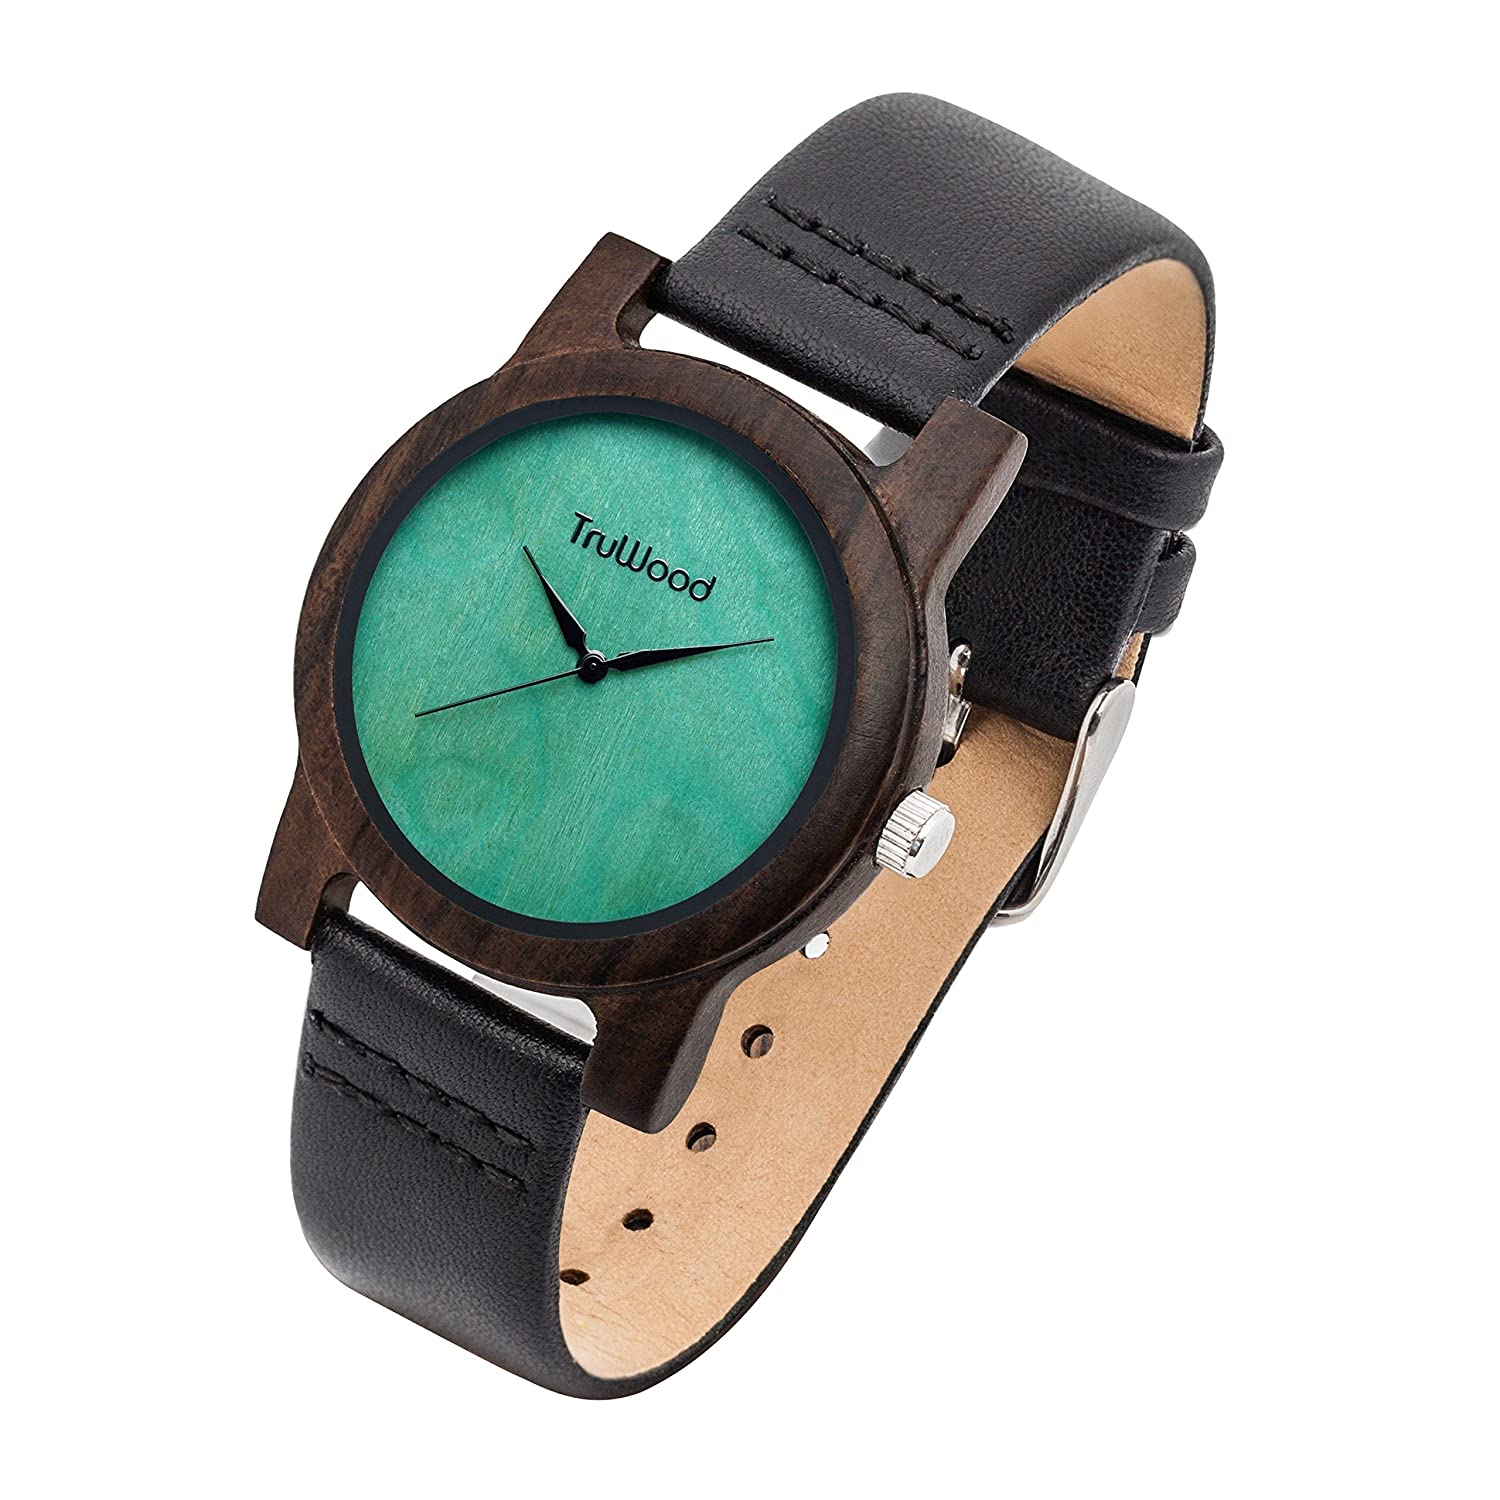 mahogany watch with download men for watches truwood olive ej products quartz wooden black hybrid wood